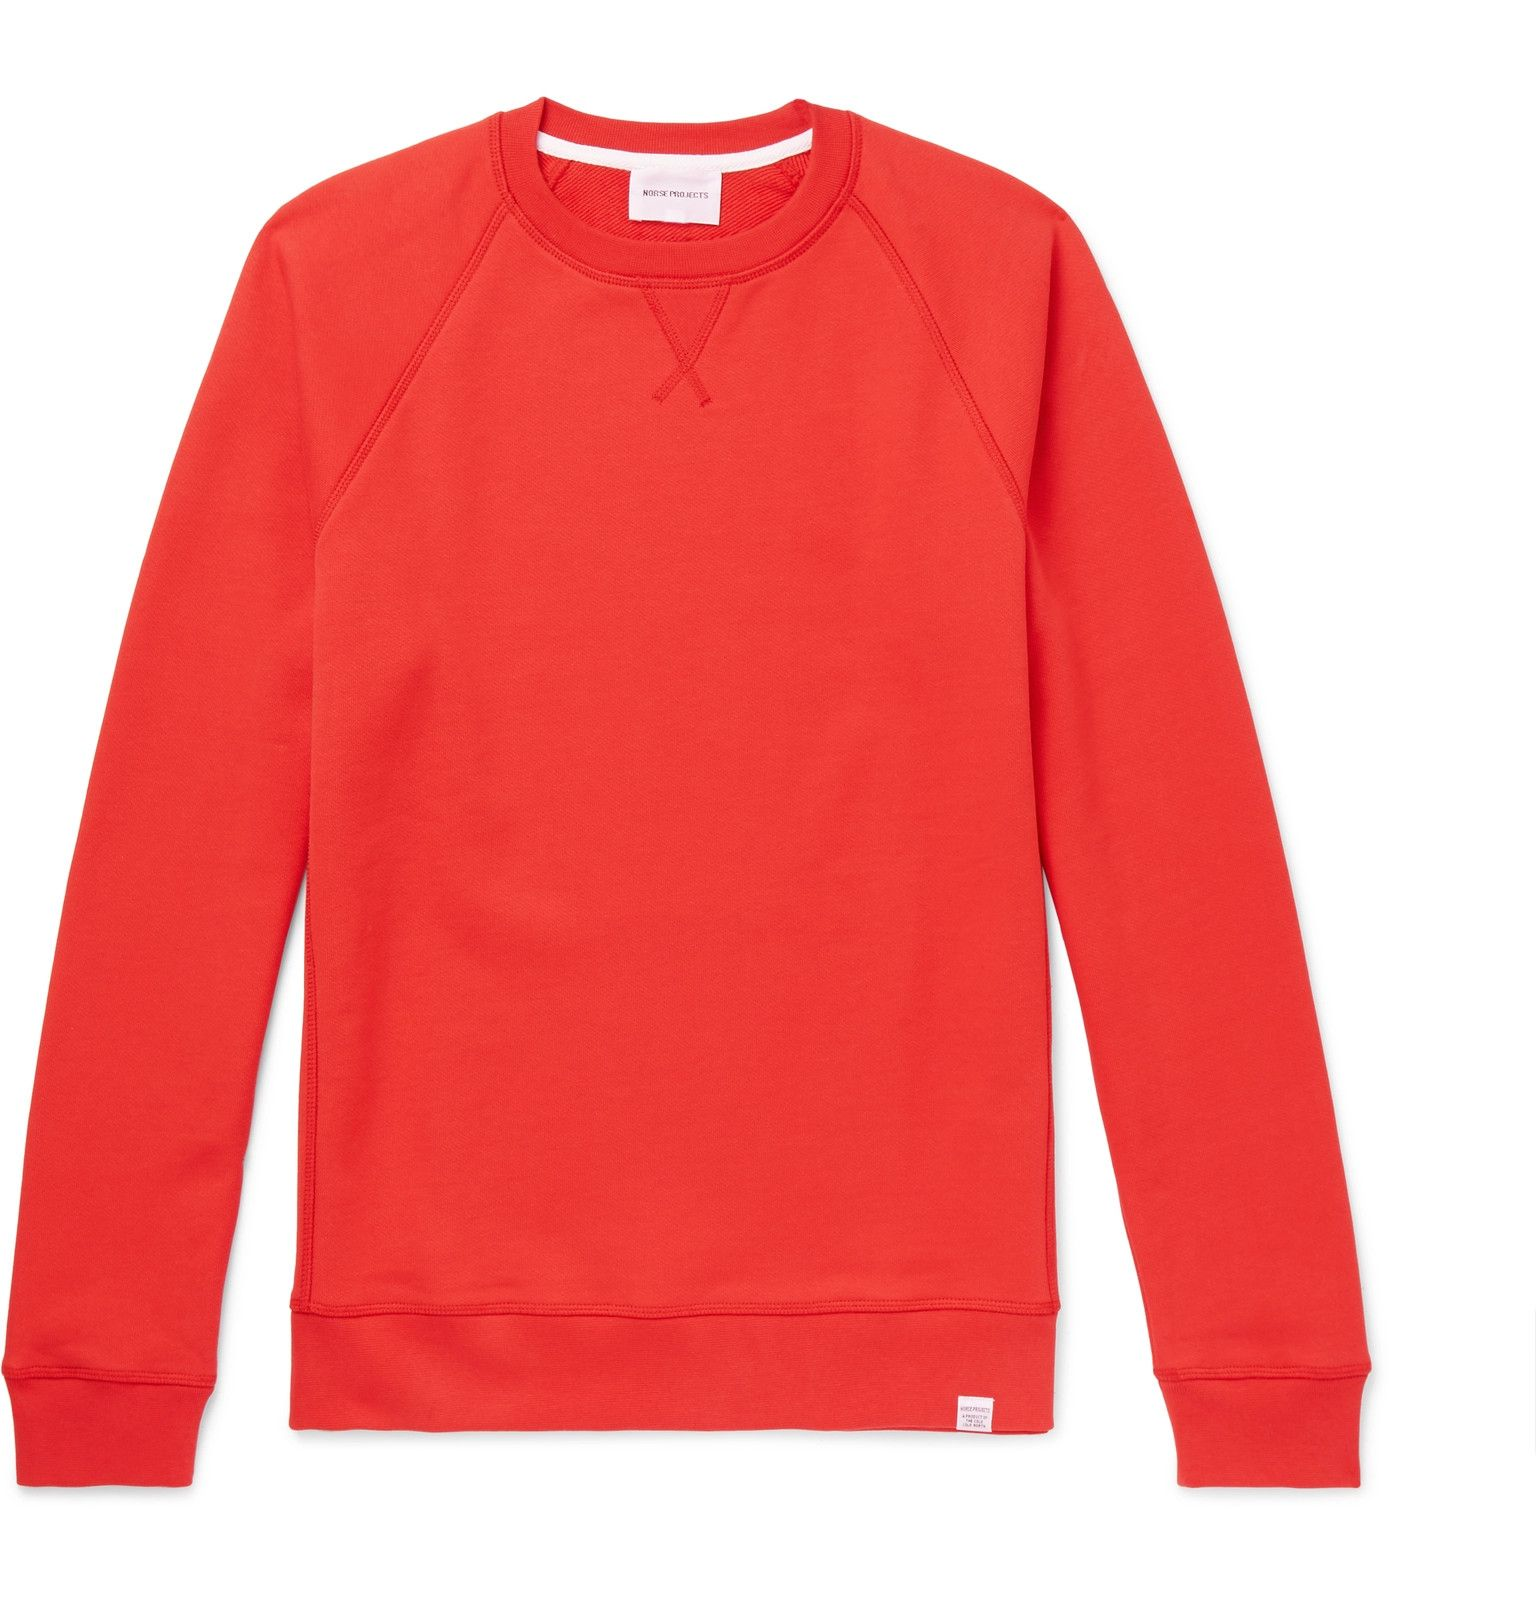 Norse projects Ketel Loopback Cotton-jersey Sweatshirt - Red OSmEGEIWWv